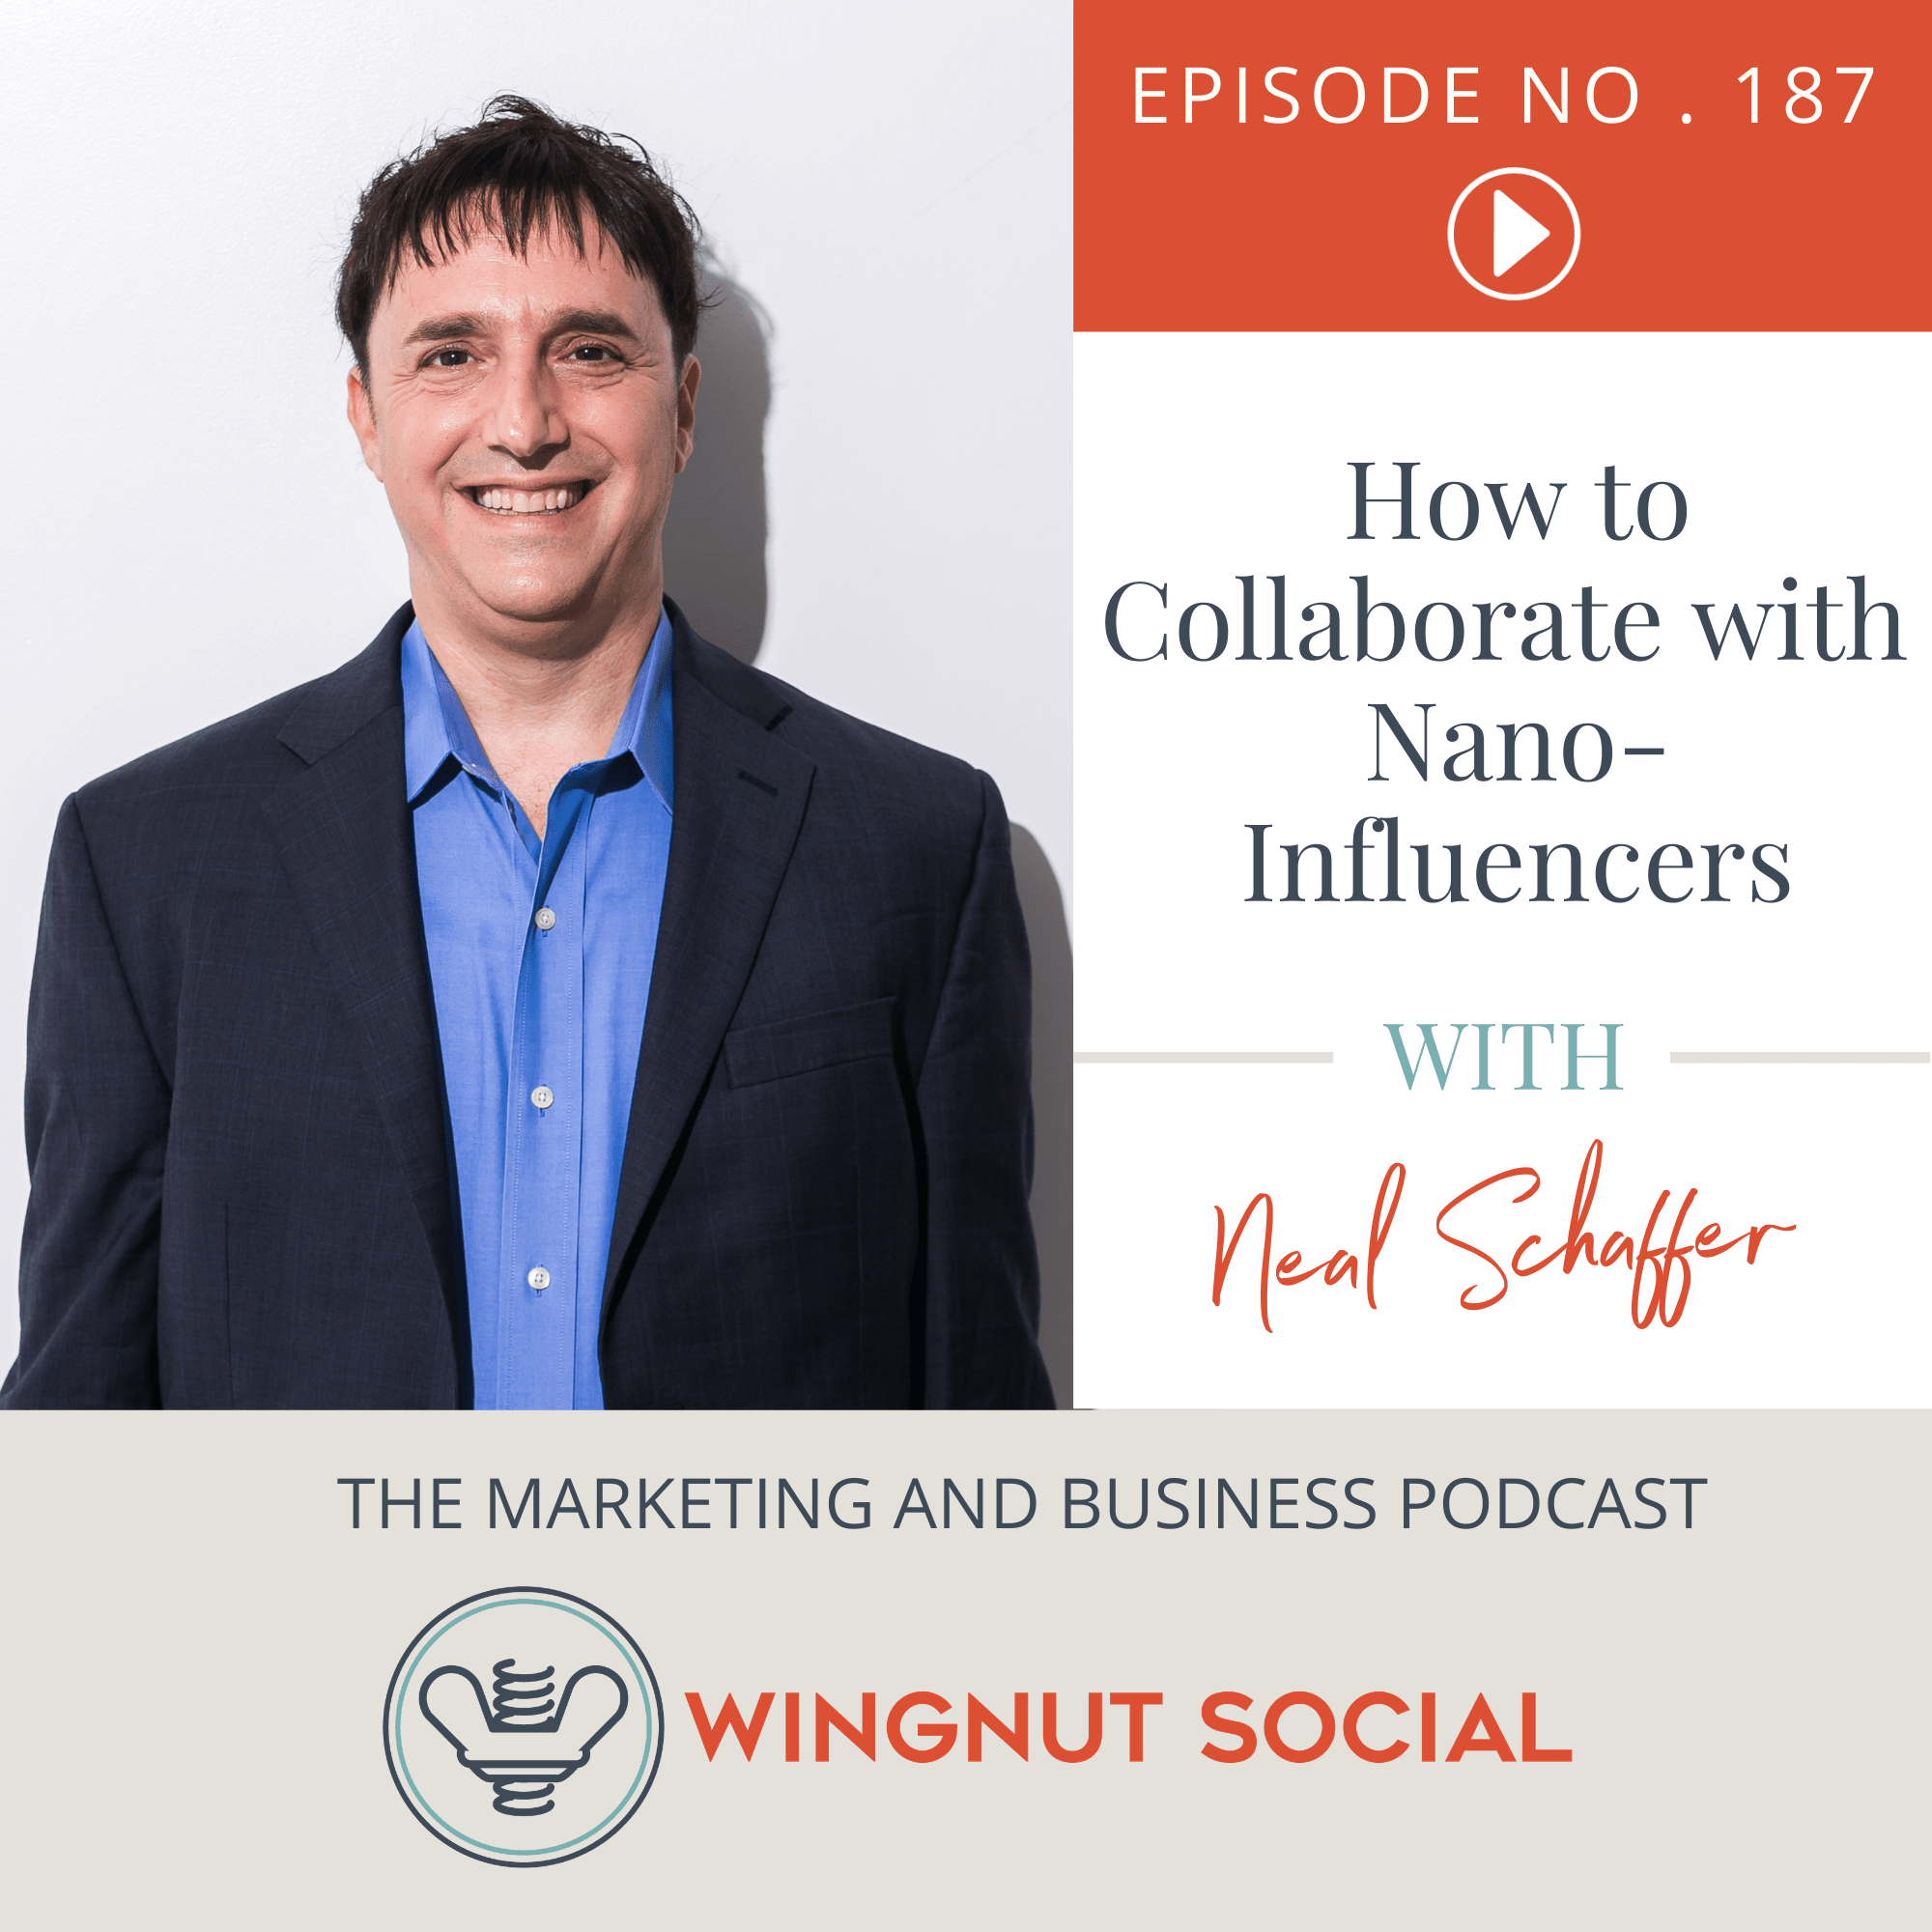 How to Collaborate with Nano-Influencers [Neal Schaffer's Take] - Episode 187